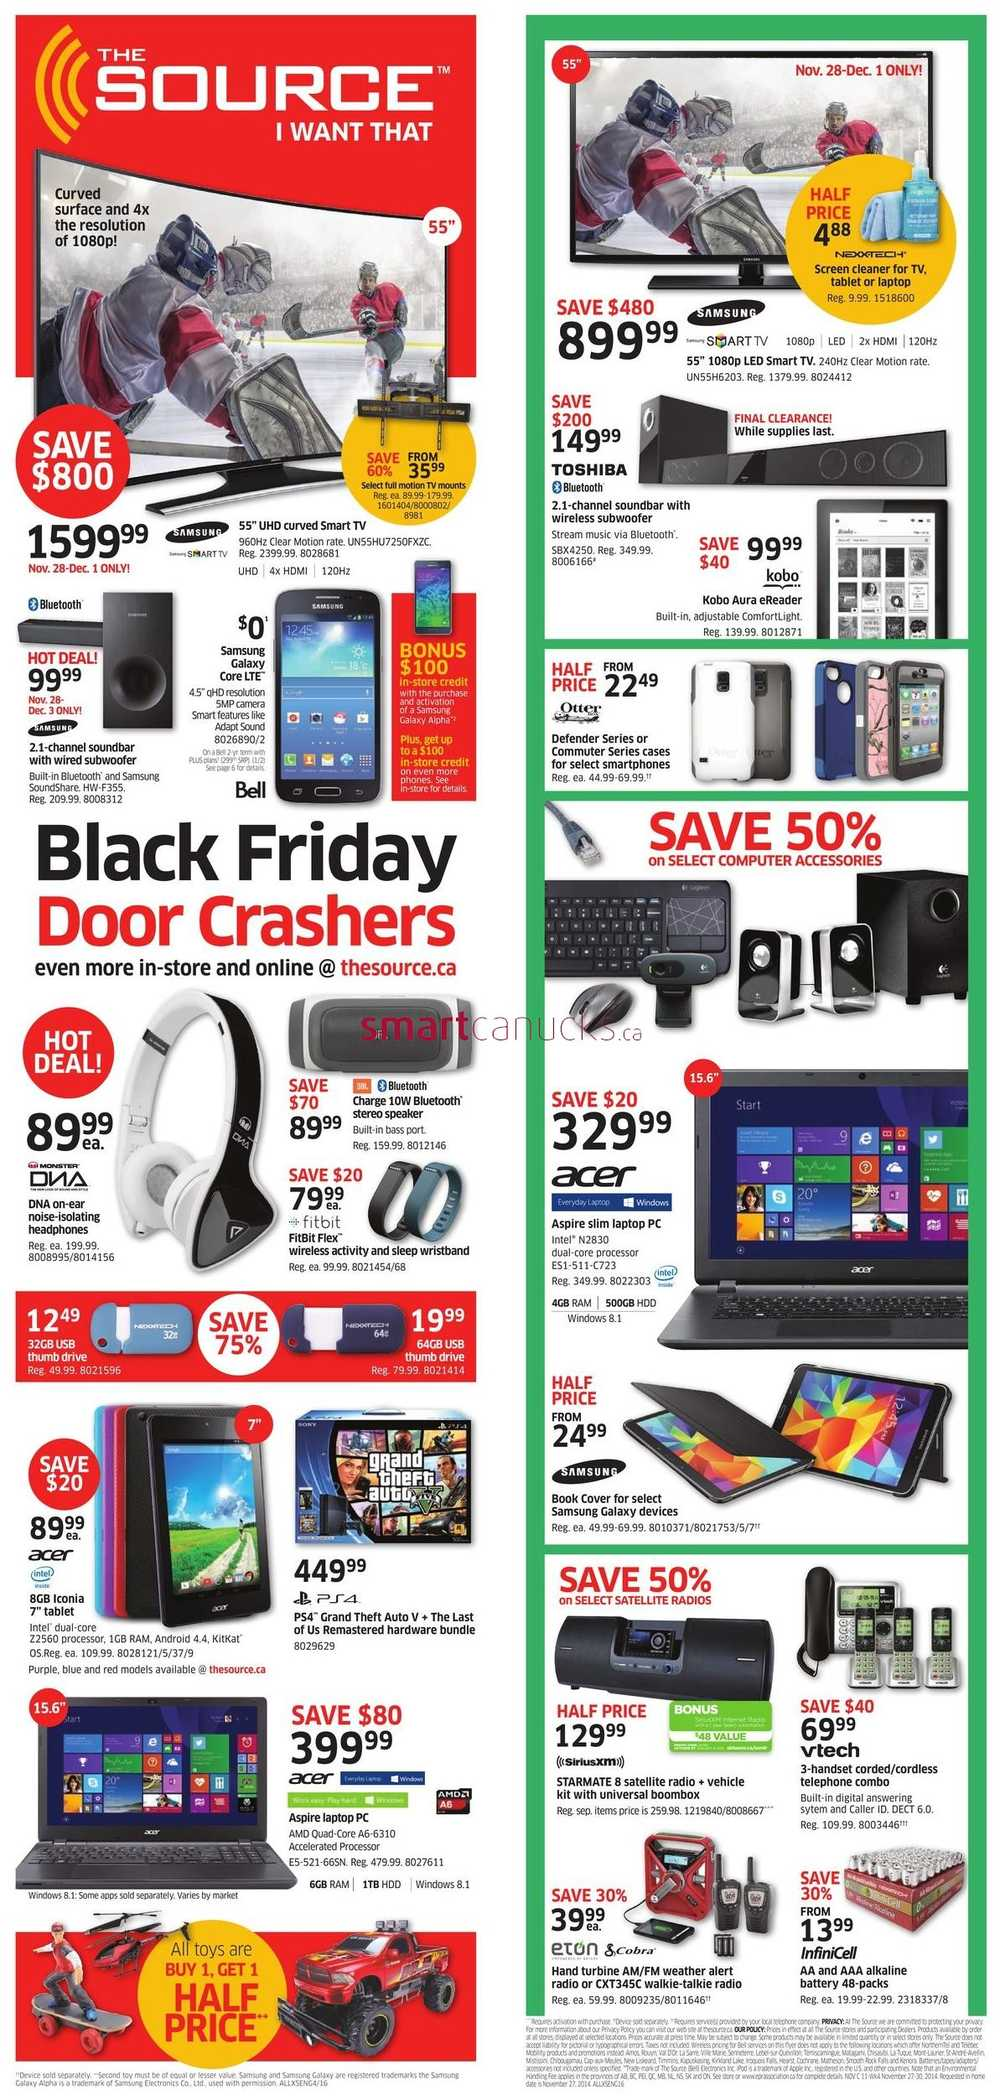 The Source Black Friday 2014 Flyer